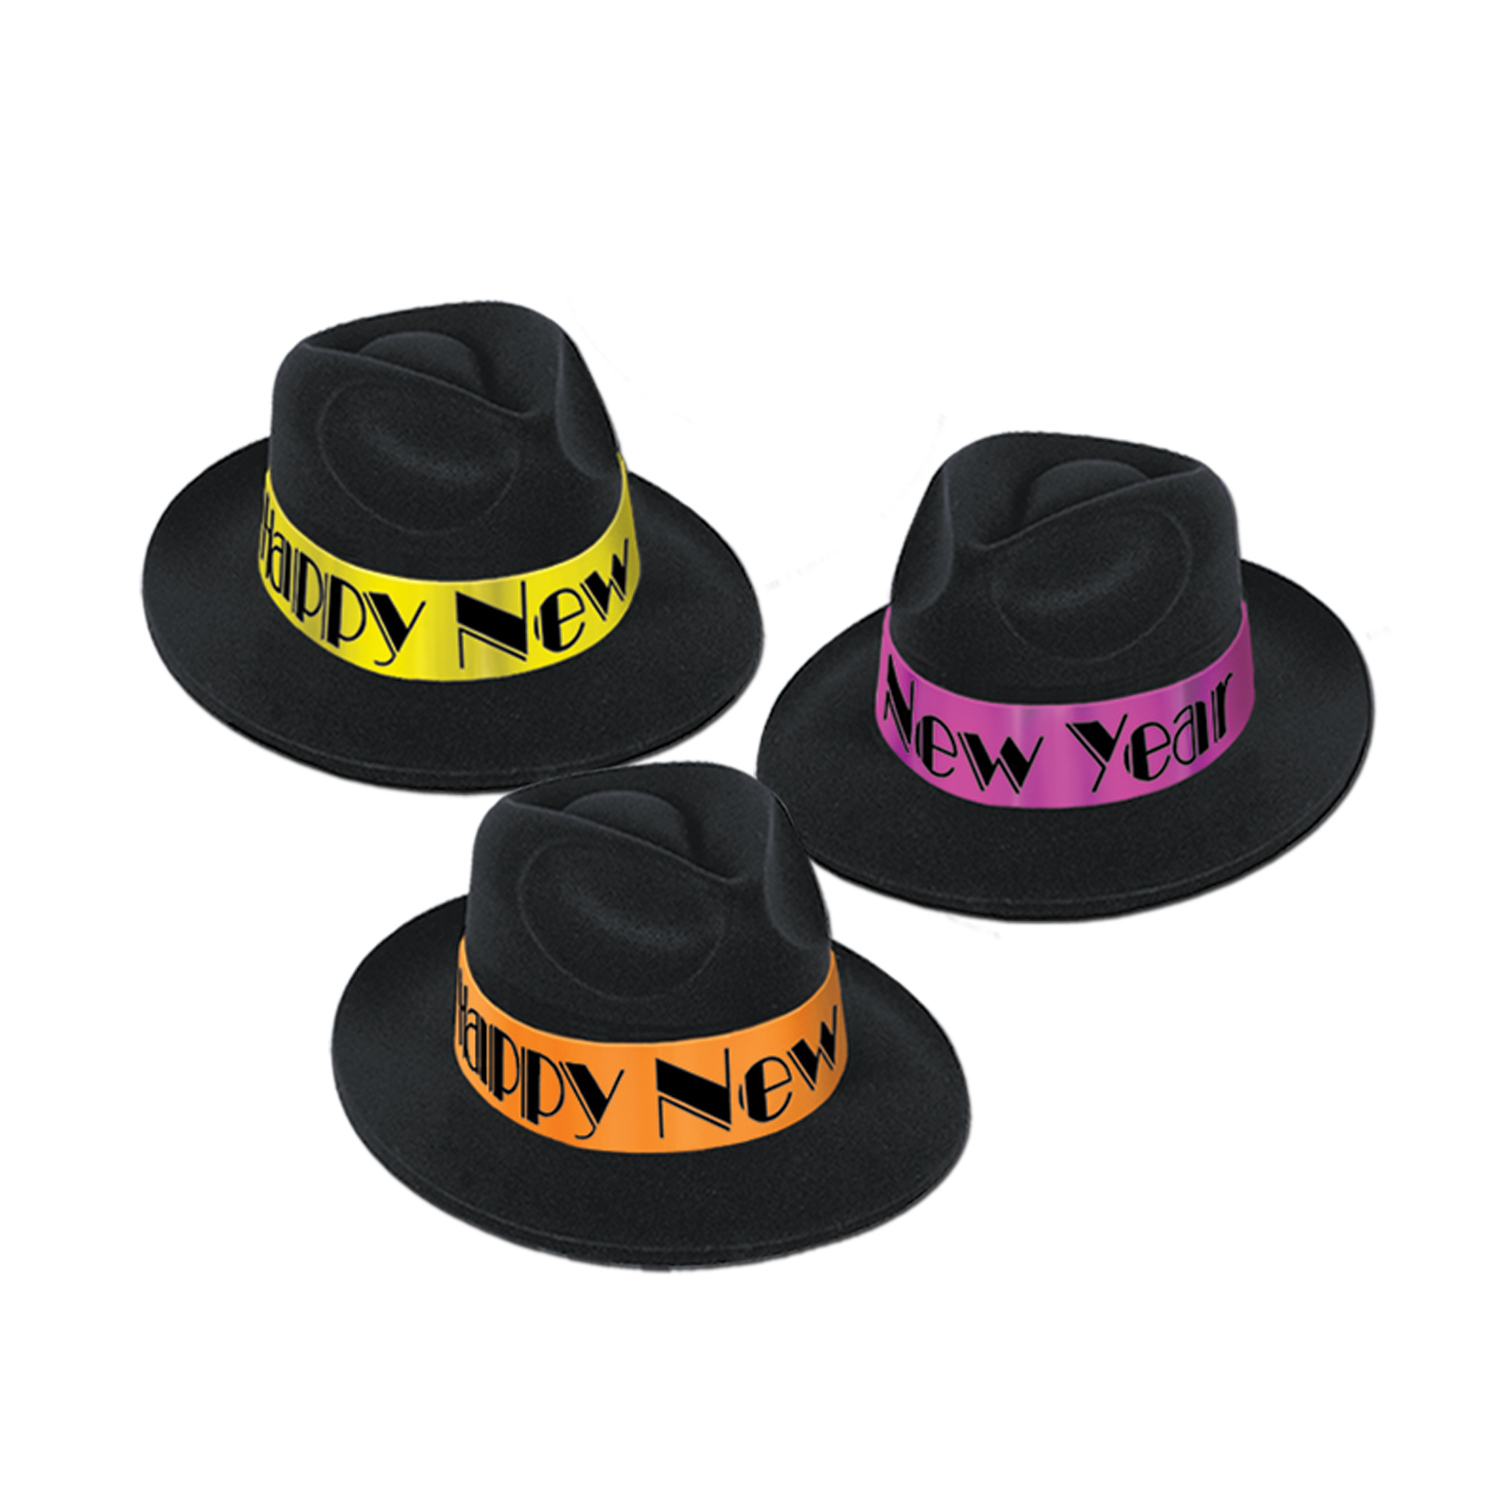 Black fedora with velour coating and neon orange, purple and yellow bands.